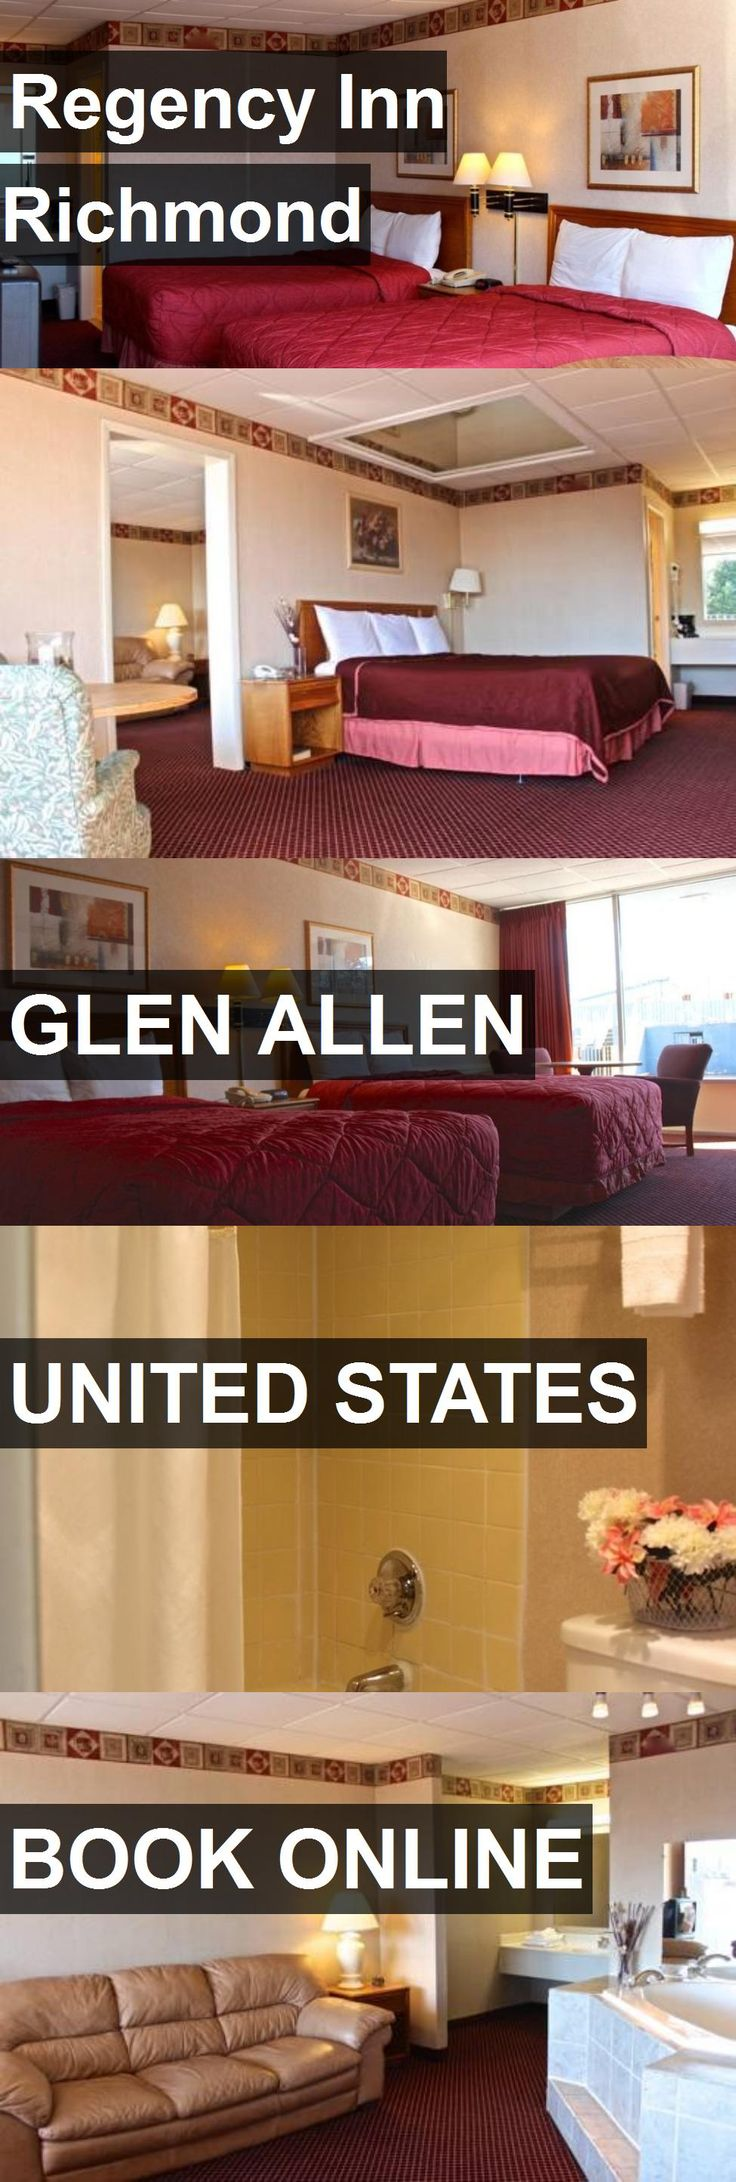 Hotel Regency Inn Richmond in Glen Allen, United States. For more information, photos, reviews and best prices please follow the link. #UnitedStates #GlenAllen #travel #vacation #hotel